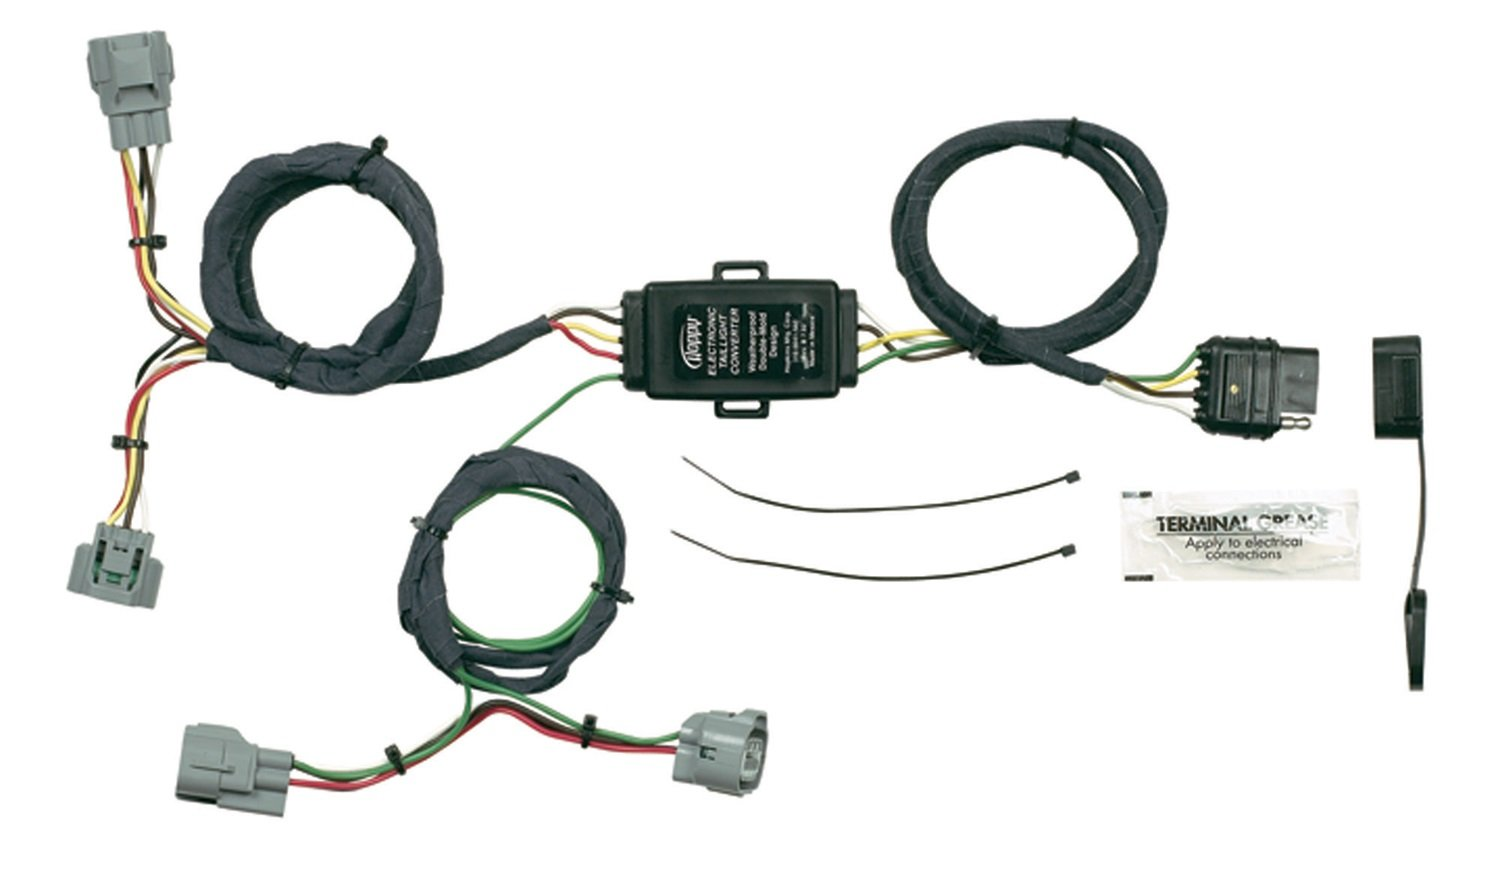 61J3Pn4wzzL._SL1500_ amazon com hopkins 43355 plug in simple vehicle wiring kit 2009 toyota tacoma trailer wiring harness at suagrazia.org